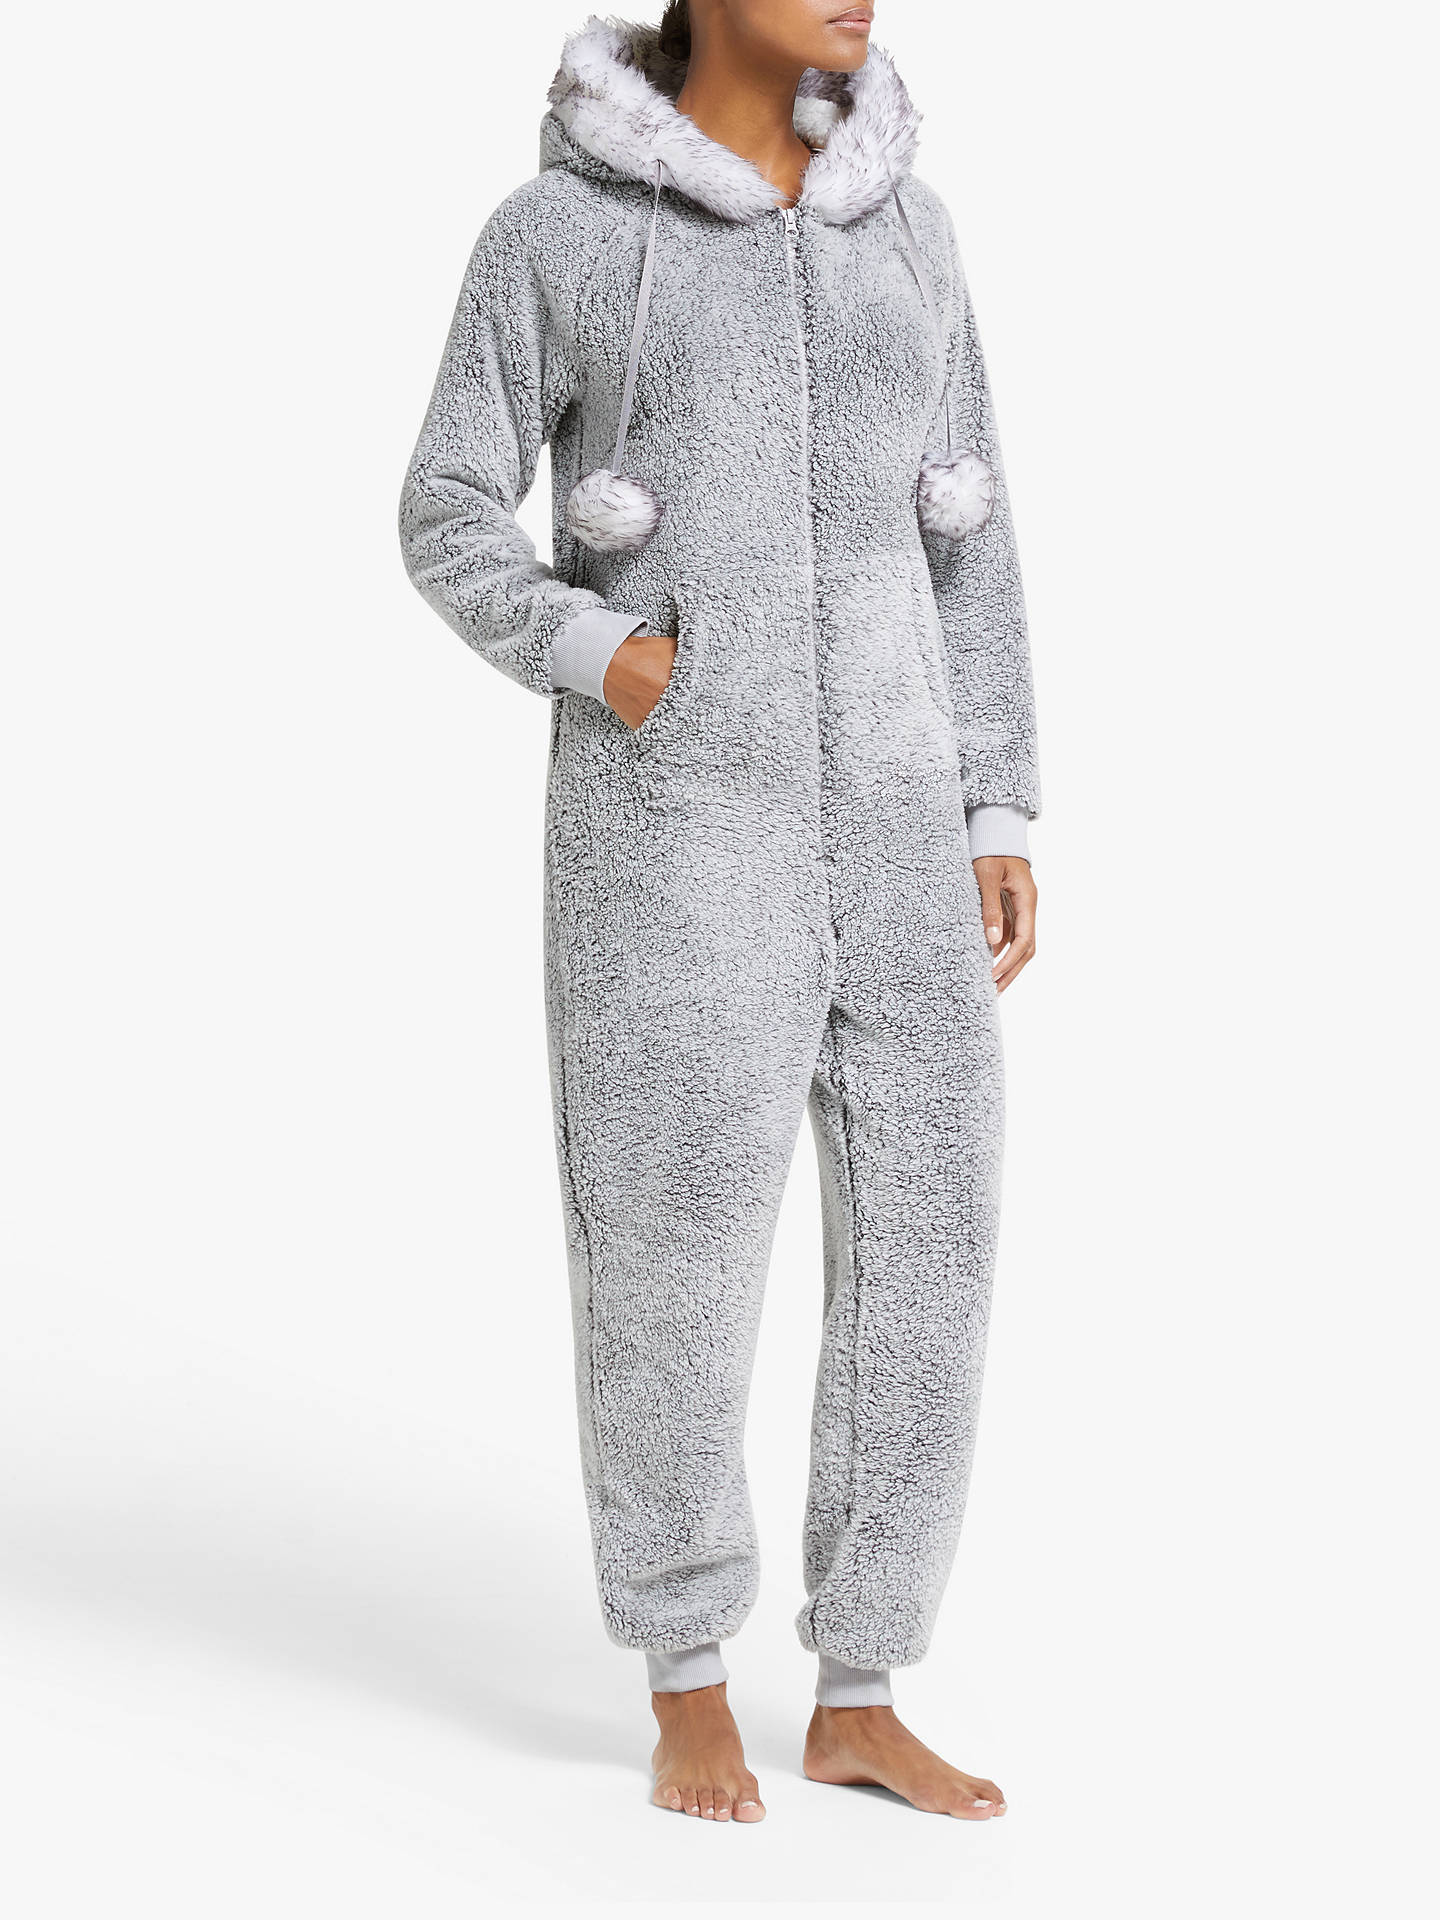 John Lewis & Partners Pom Pom Fleece Onesie, Grey by John Lewis & Partners